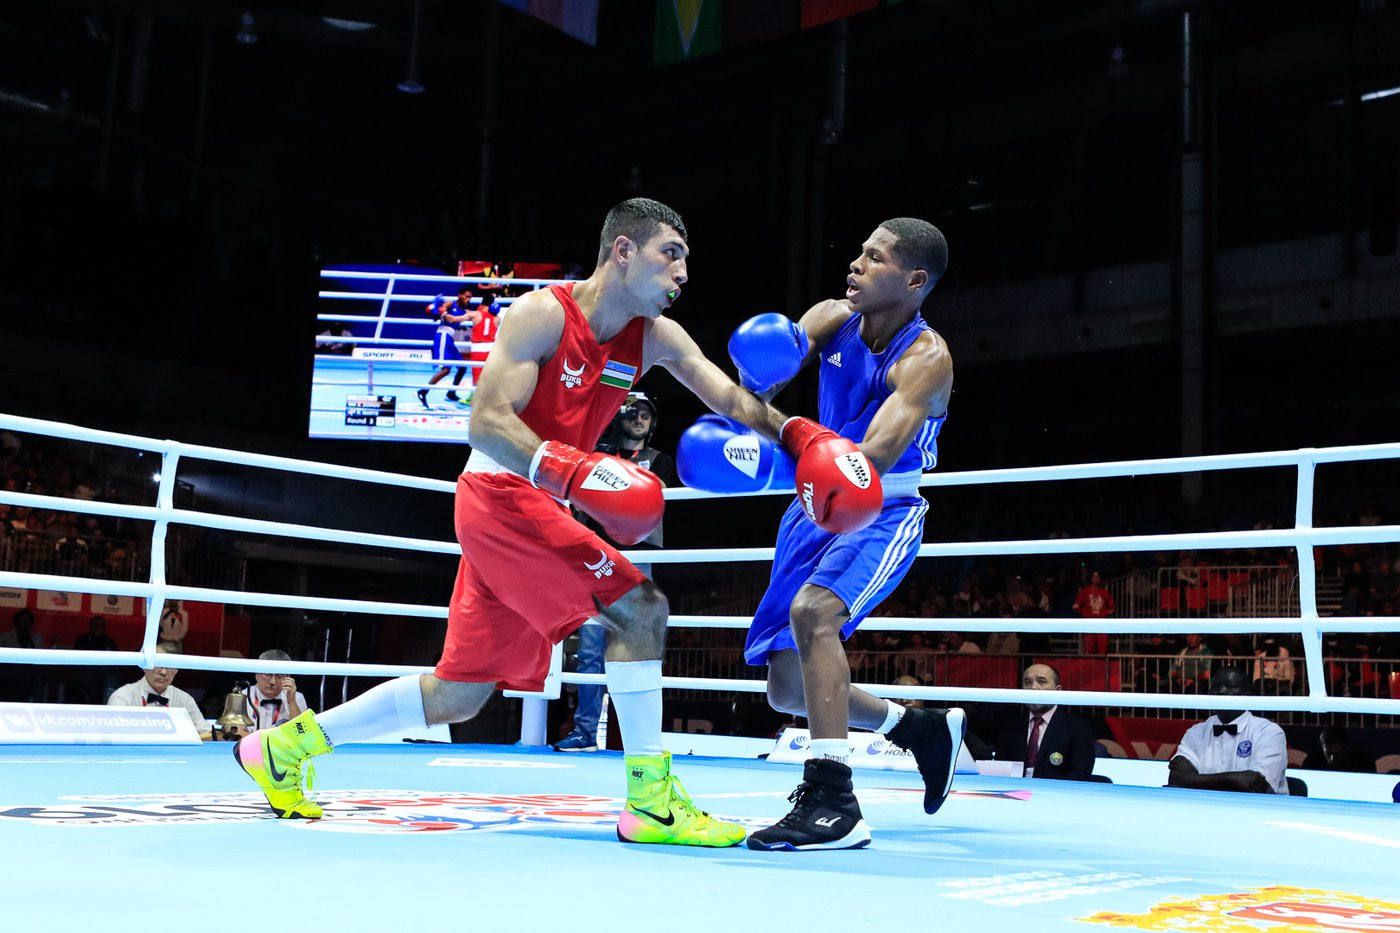 AIBA Men's World Championships 2019: Day six of competition